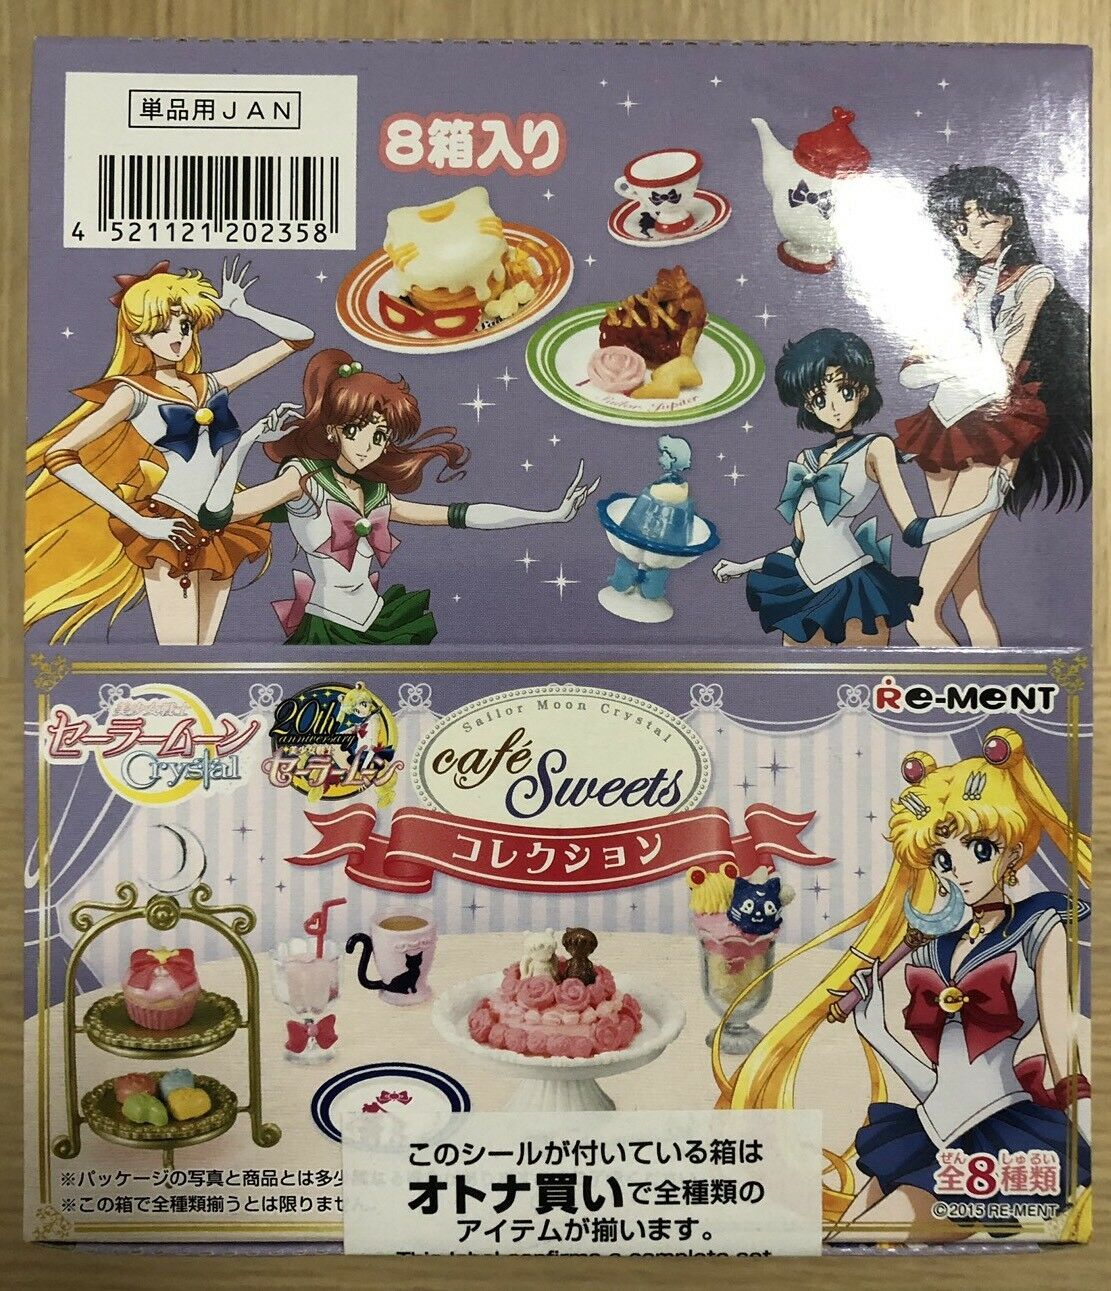 Sailor Moon Crystal Cafe Sweets Re-Ment